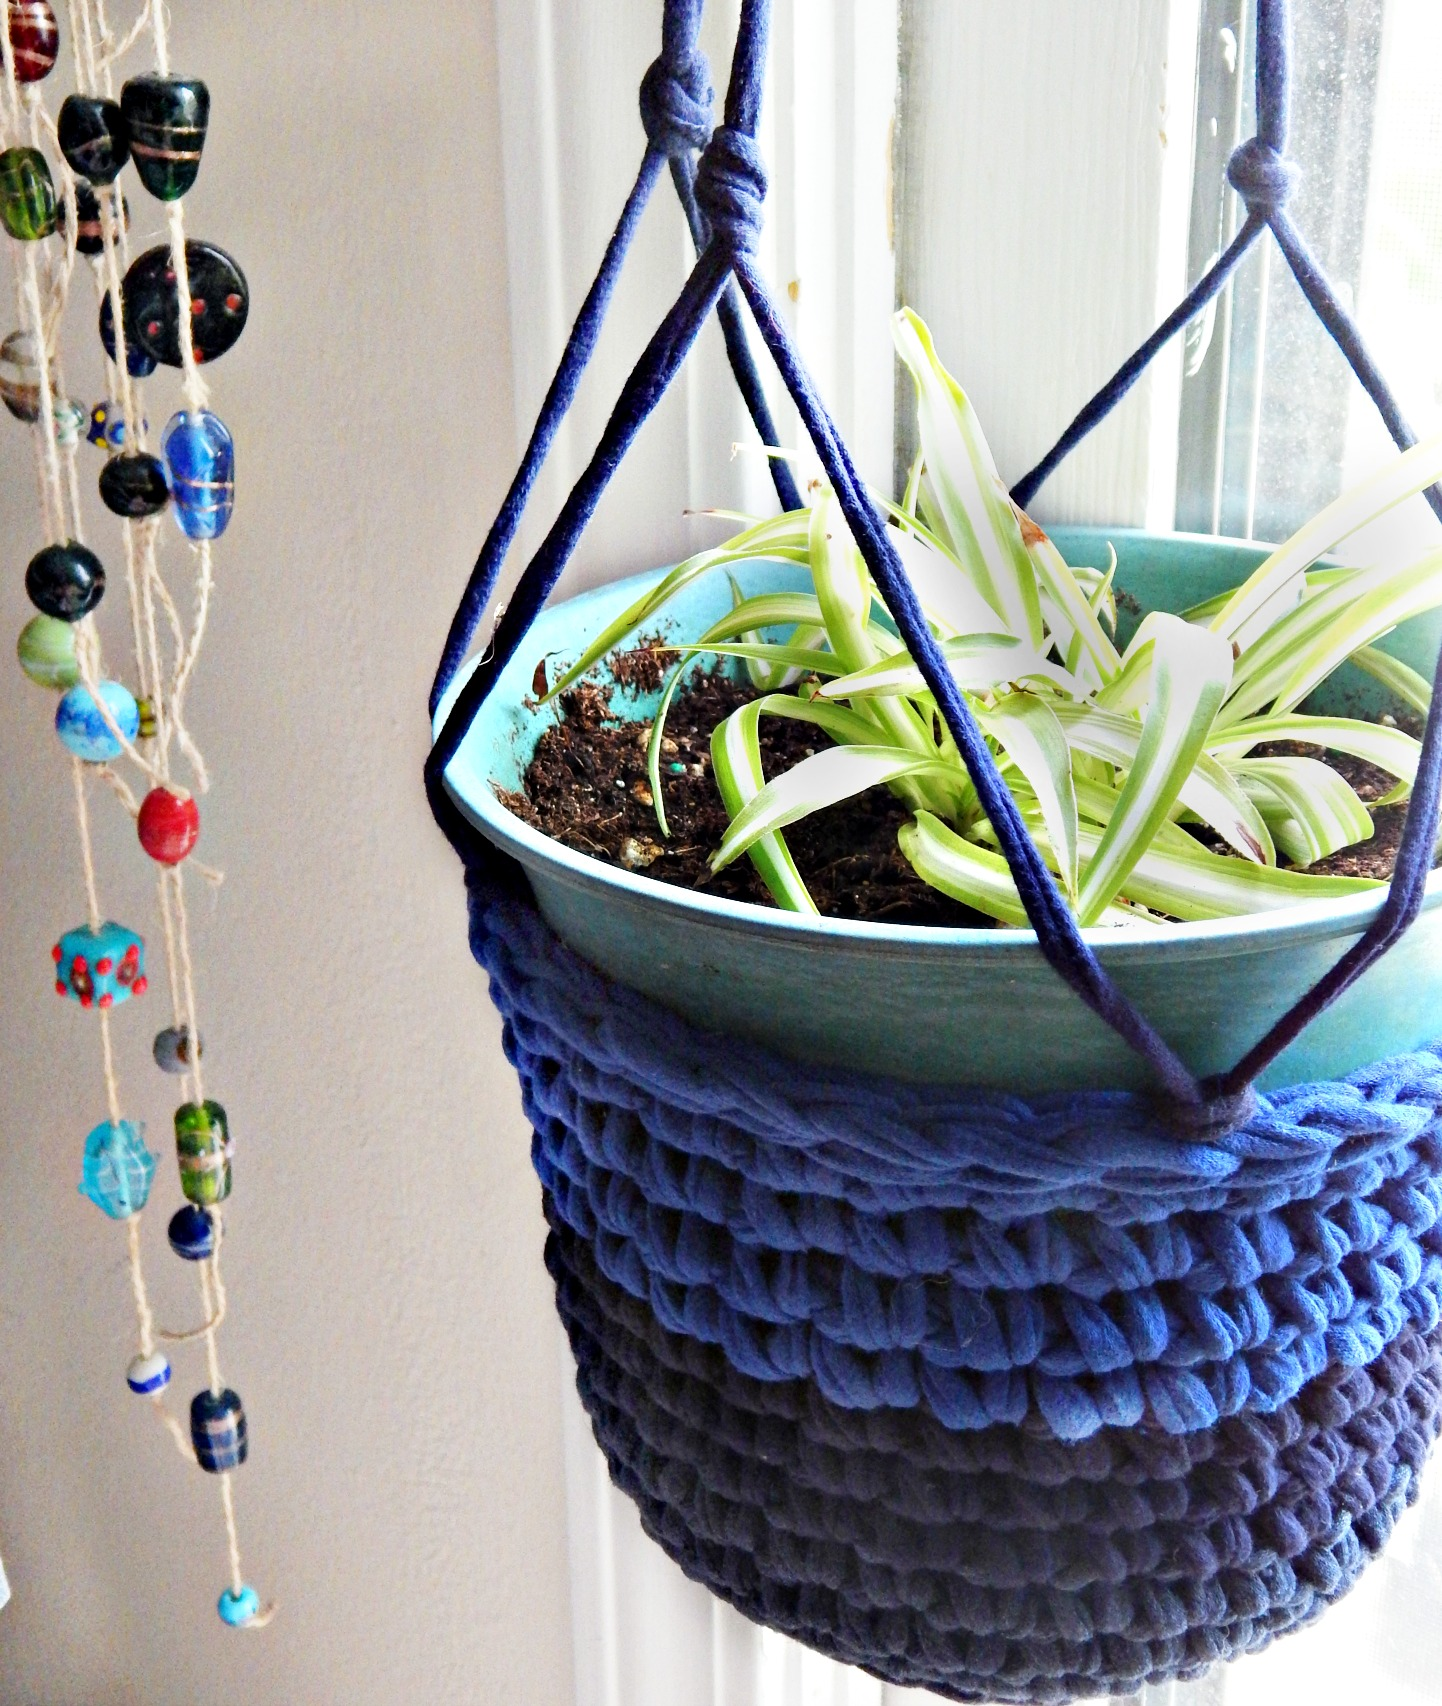 Make sure the plant is secure. This hanging plant holder is super easy to make and can be made from a variety of different materials yarn, rope, hemp, ect. You can also make these holders larger or smaller depending on the size of plant you are hanging.